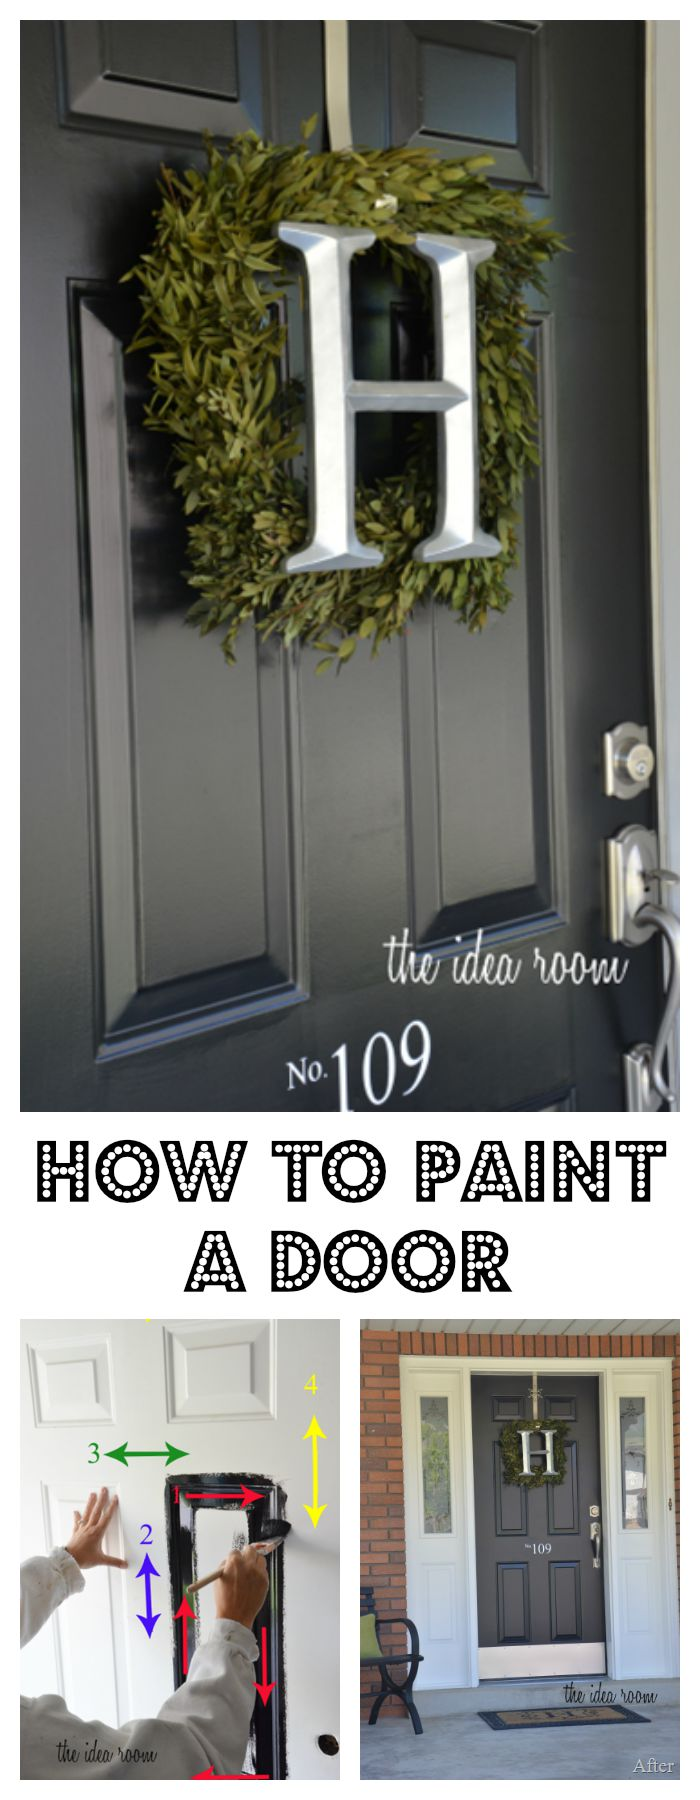 How to Paint a Door